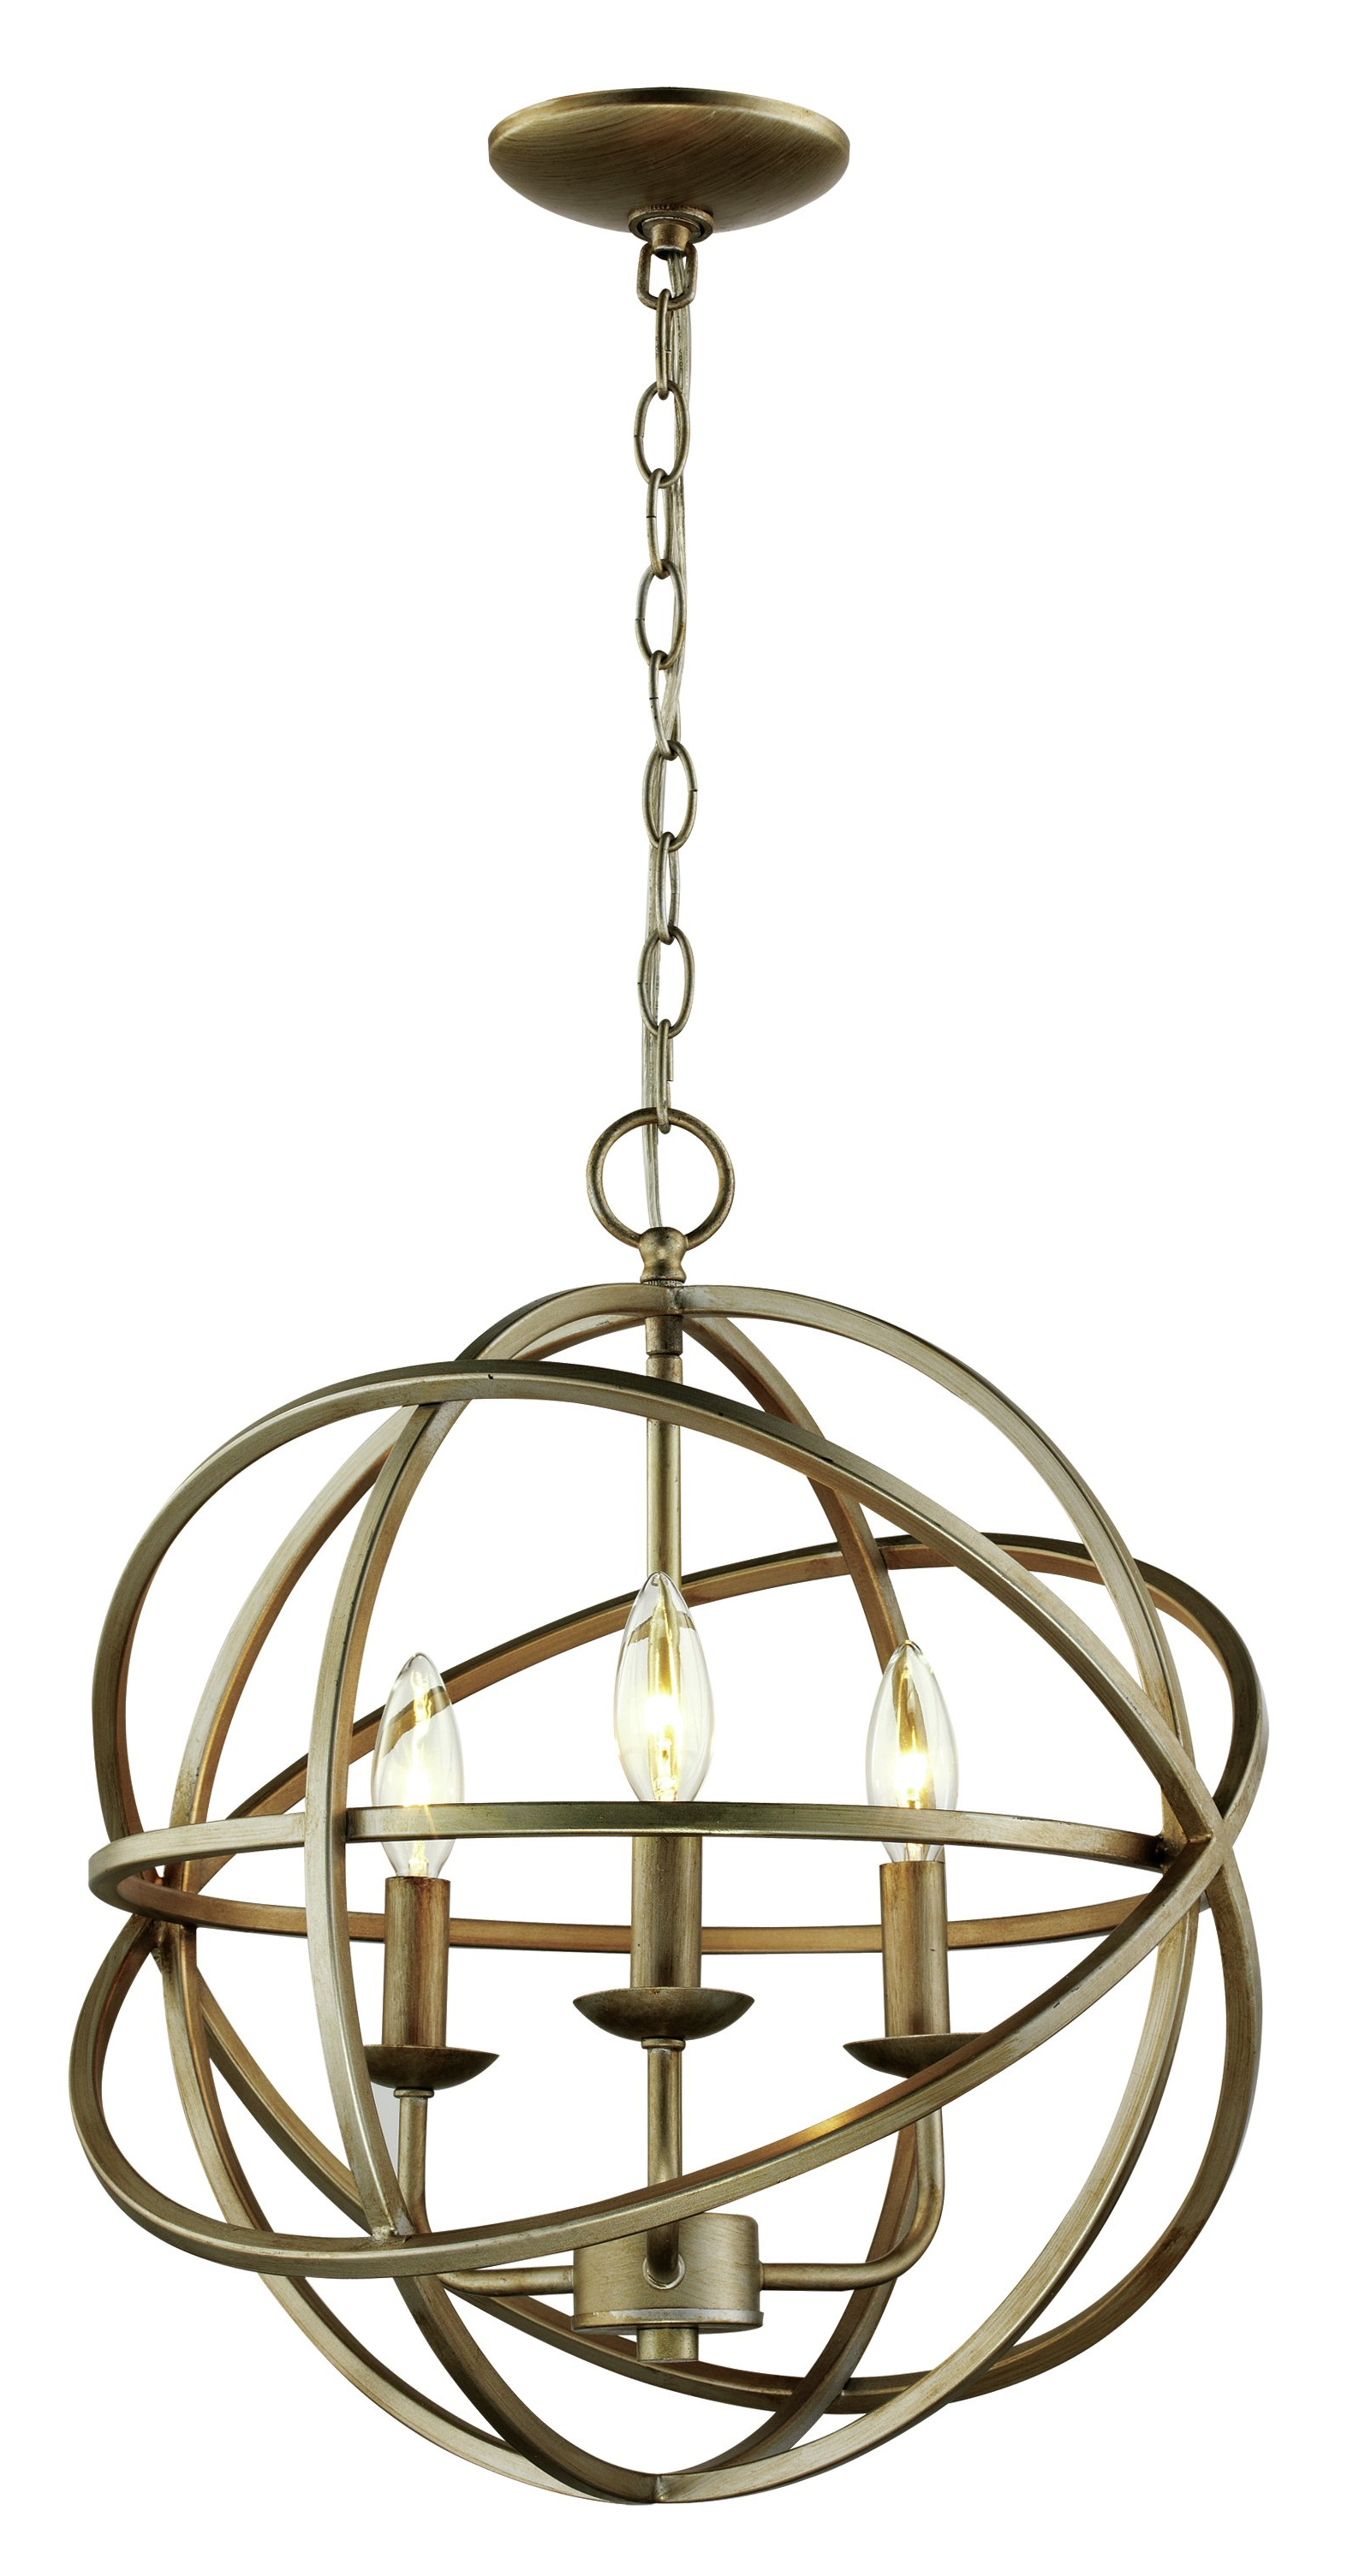 Shipststour 3 Light Globe Chandeliers With Regard To Widely Used Baitz 3 Light Globe Chandelier (View 6 of 25)